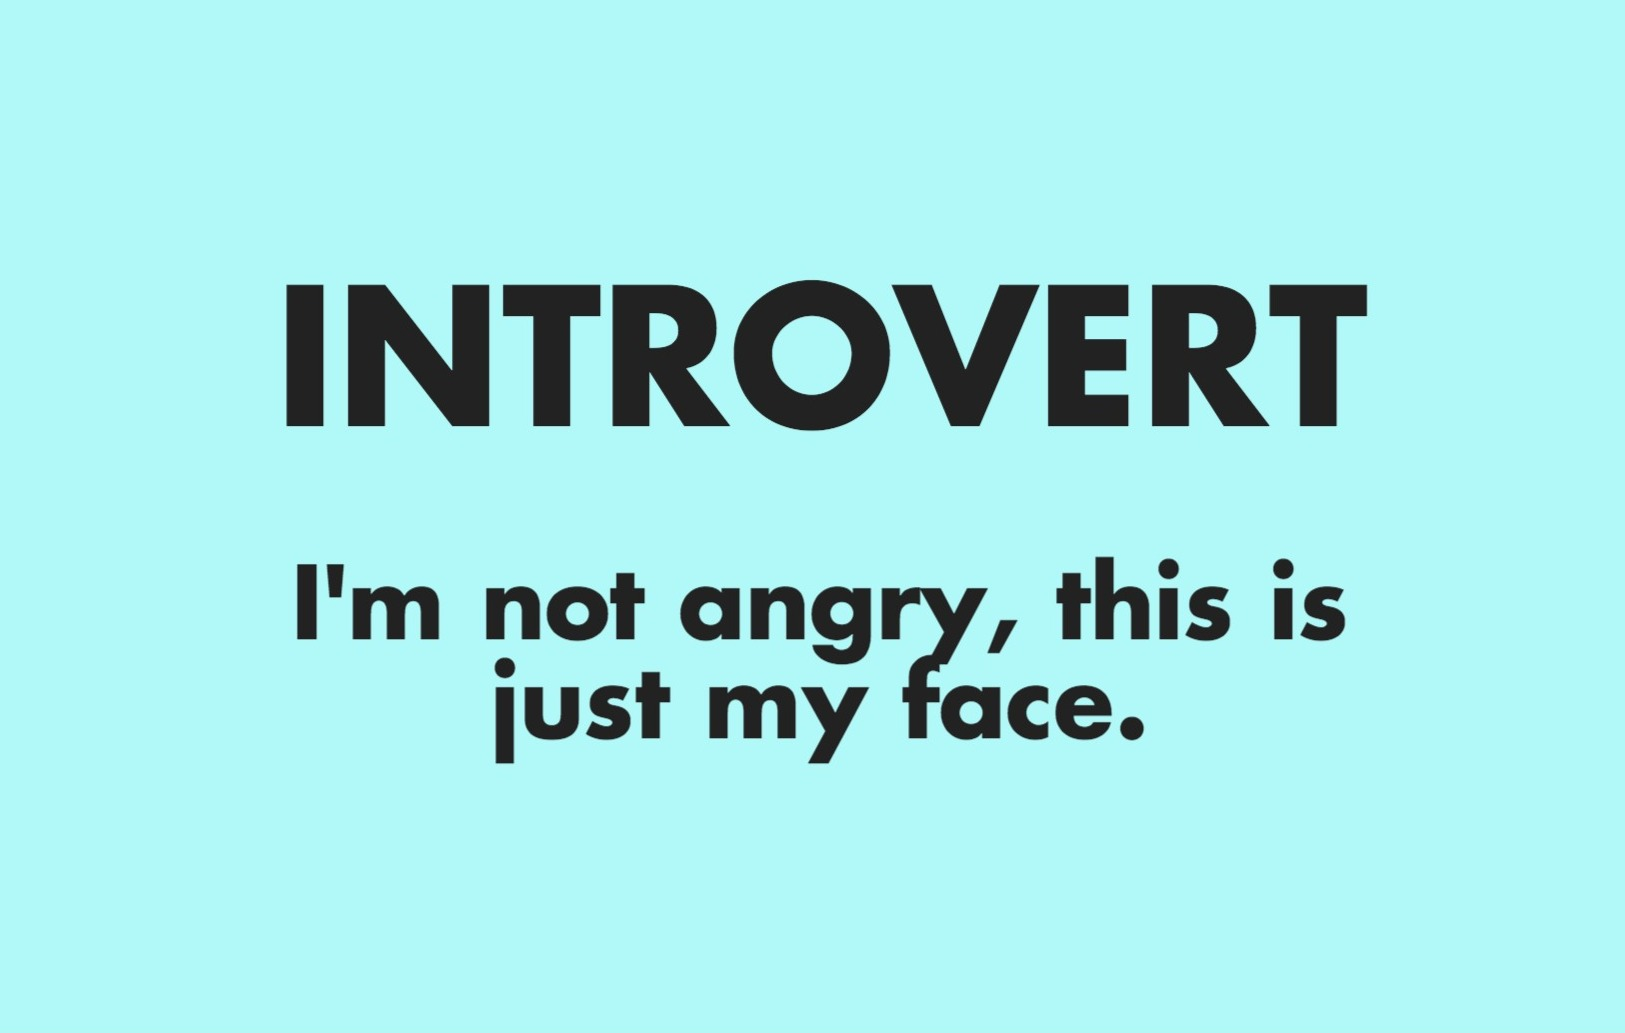 Introversion is not bad at all